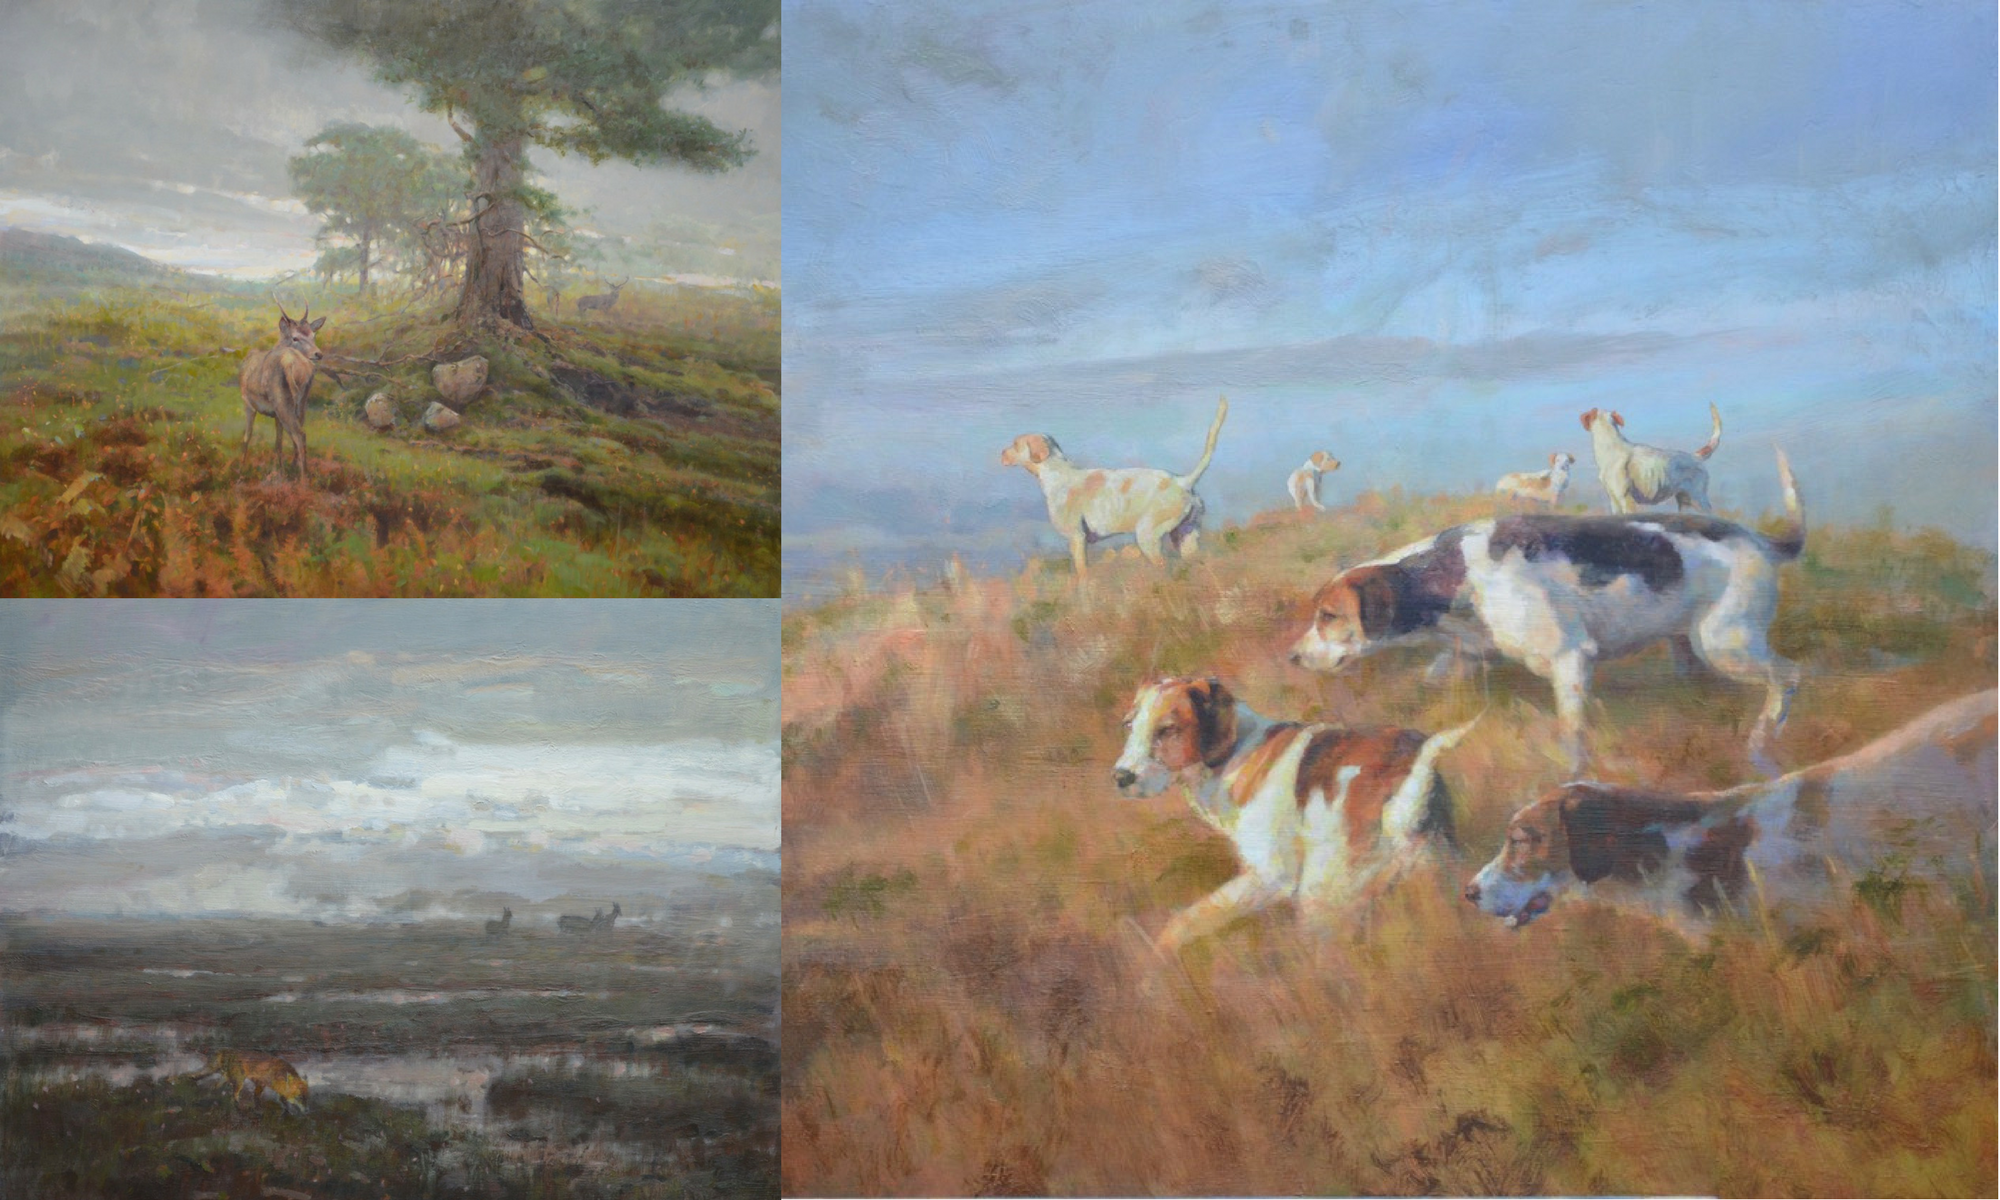 Ian MacGillivray new works including deer hounds and Scottish landscapes